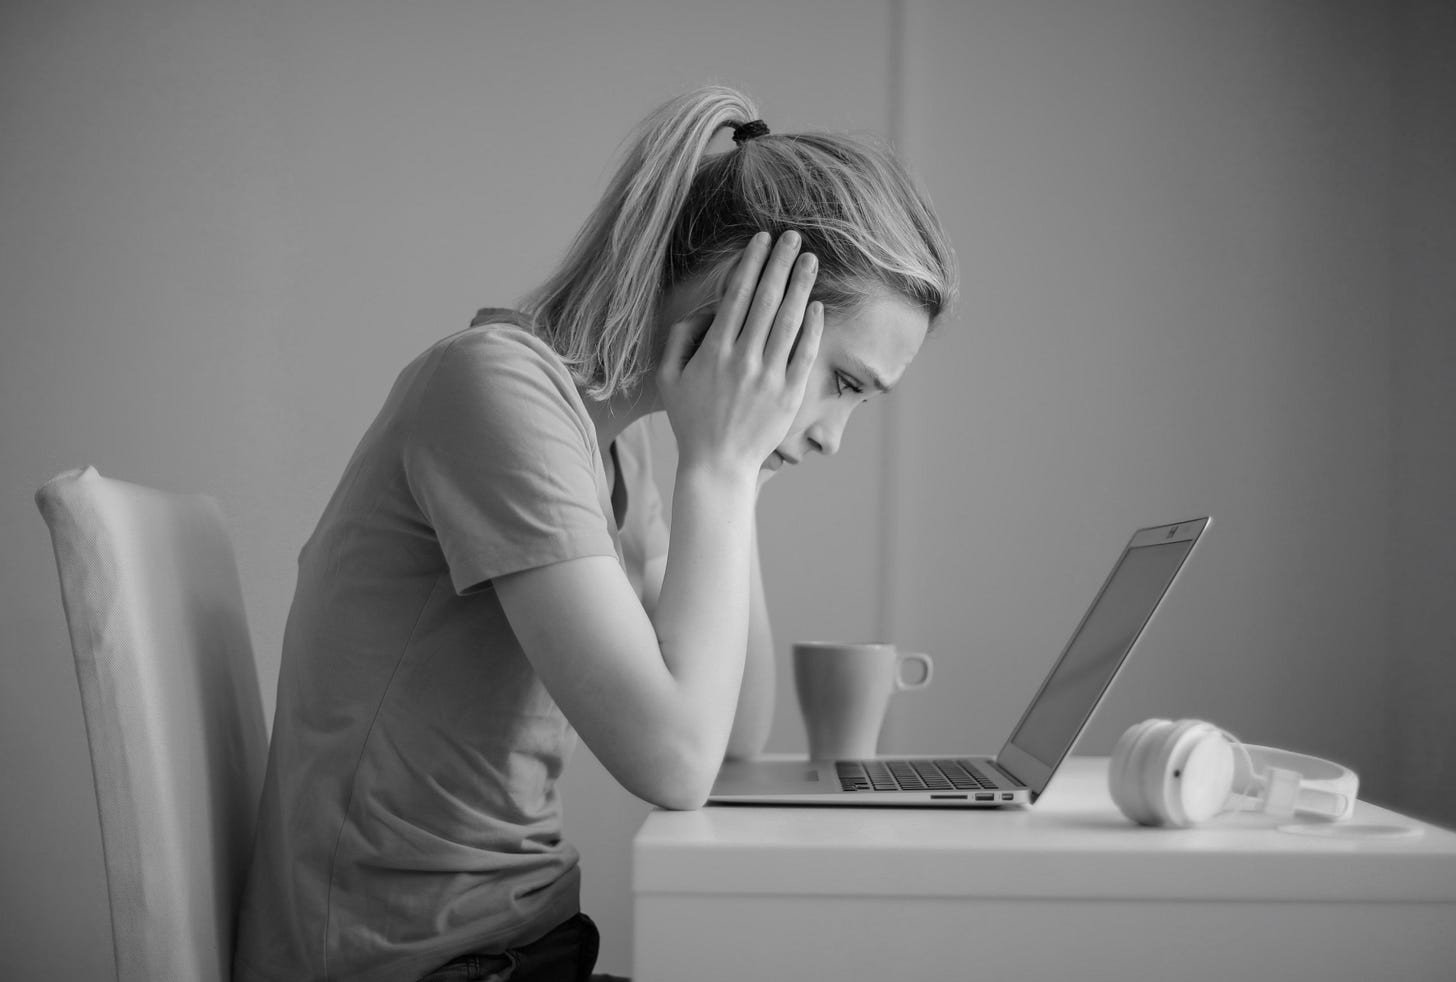 A slender young woman with her hands to her face, looks worried as she stares into her laptop computer screen